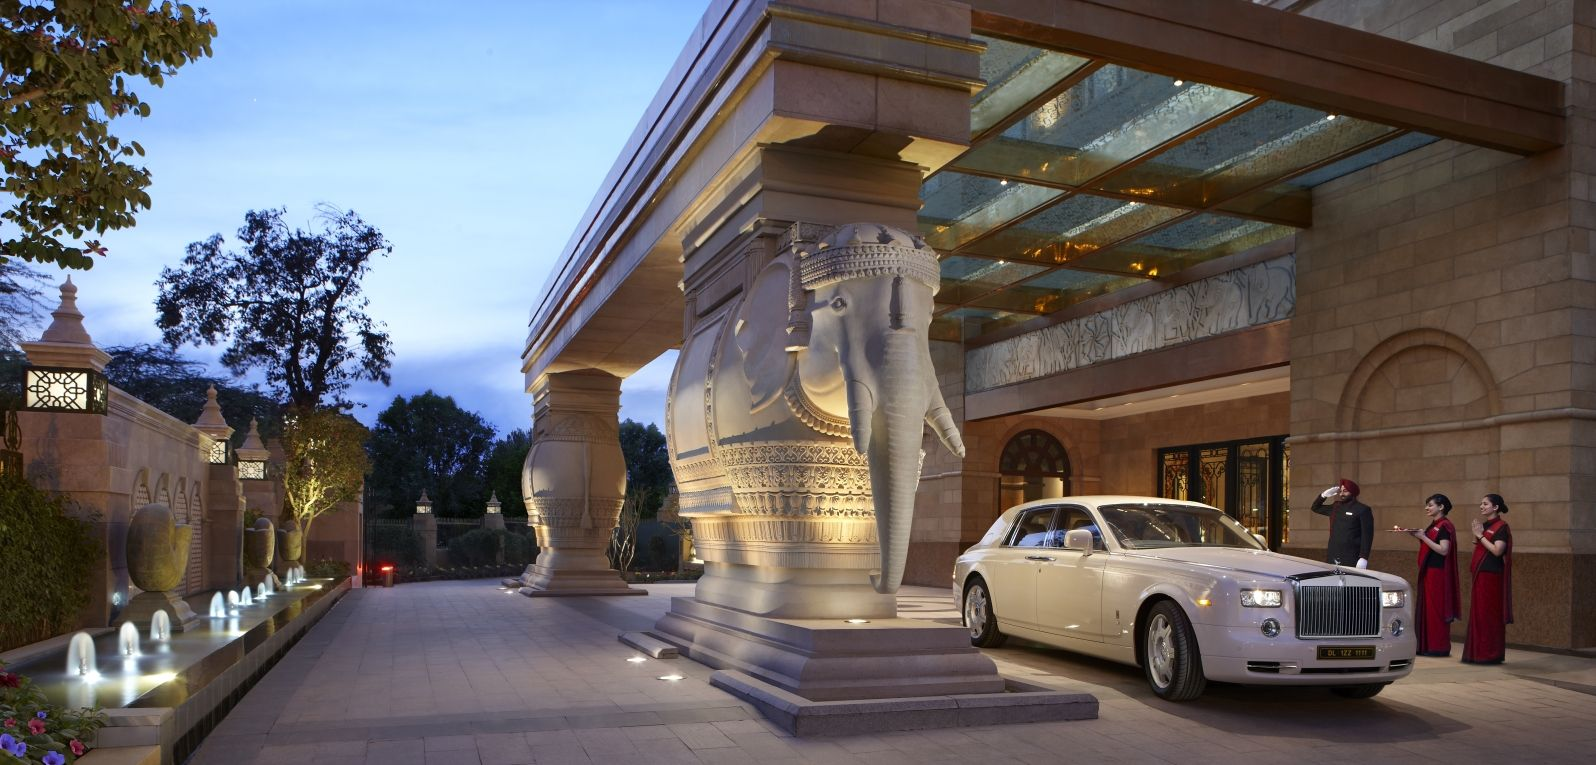 Arrive In Style At The Grand Porte Cochere Of The Leela Palace New Delhi Statues Of Two White